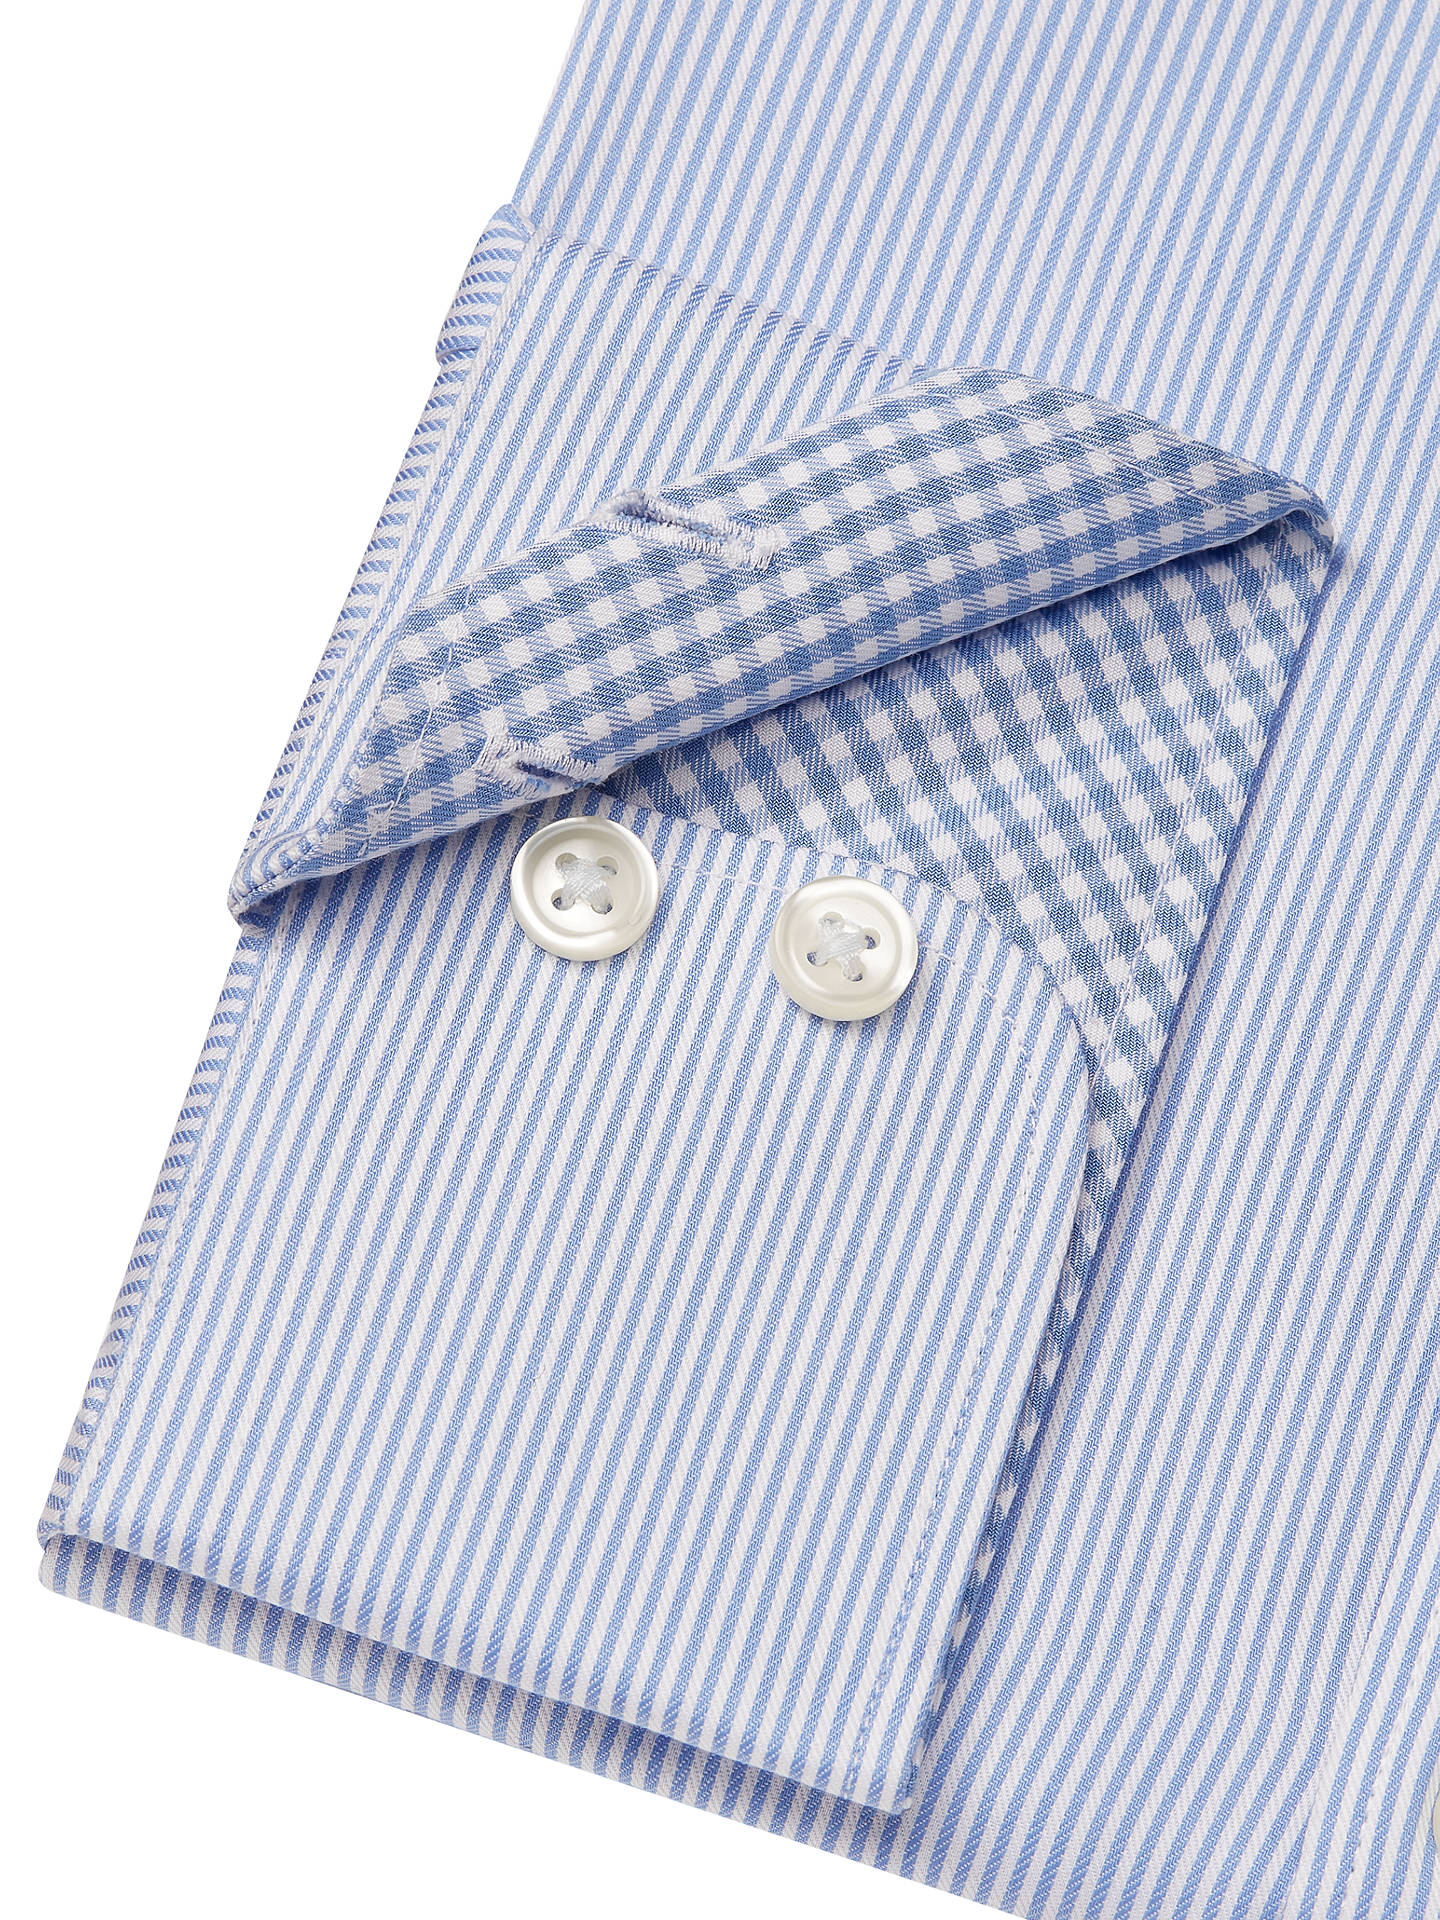 BuyJohn Lewis & Partners Non Iron Bengal Stripe Regular Fit Shirt, Blue, 15 Online at johnlewis.com